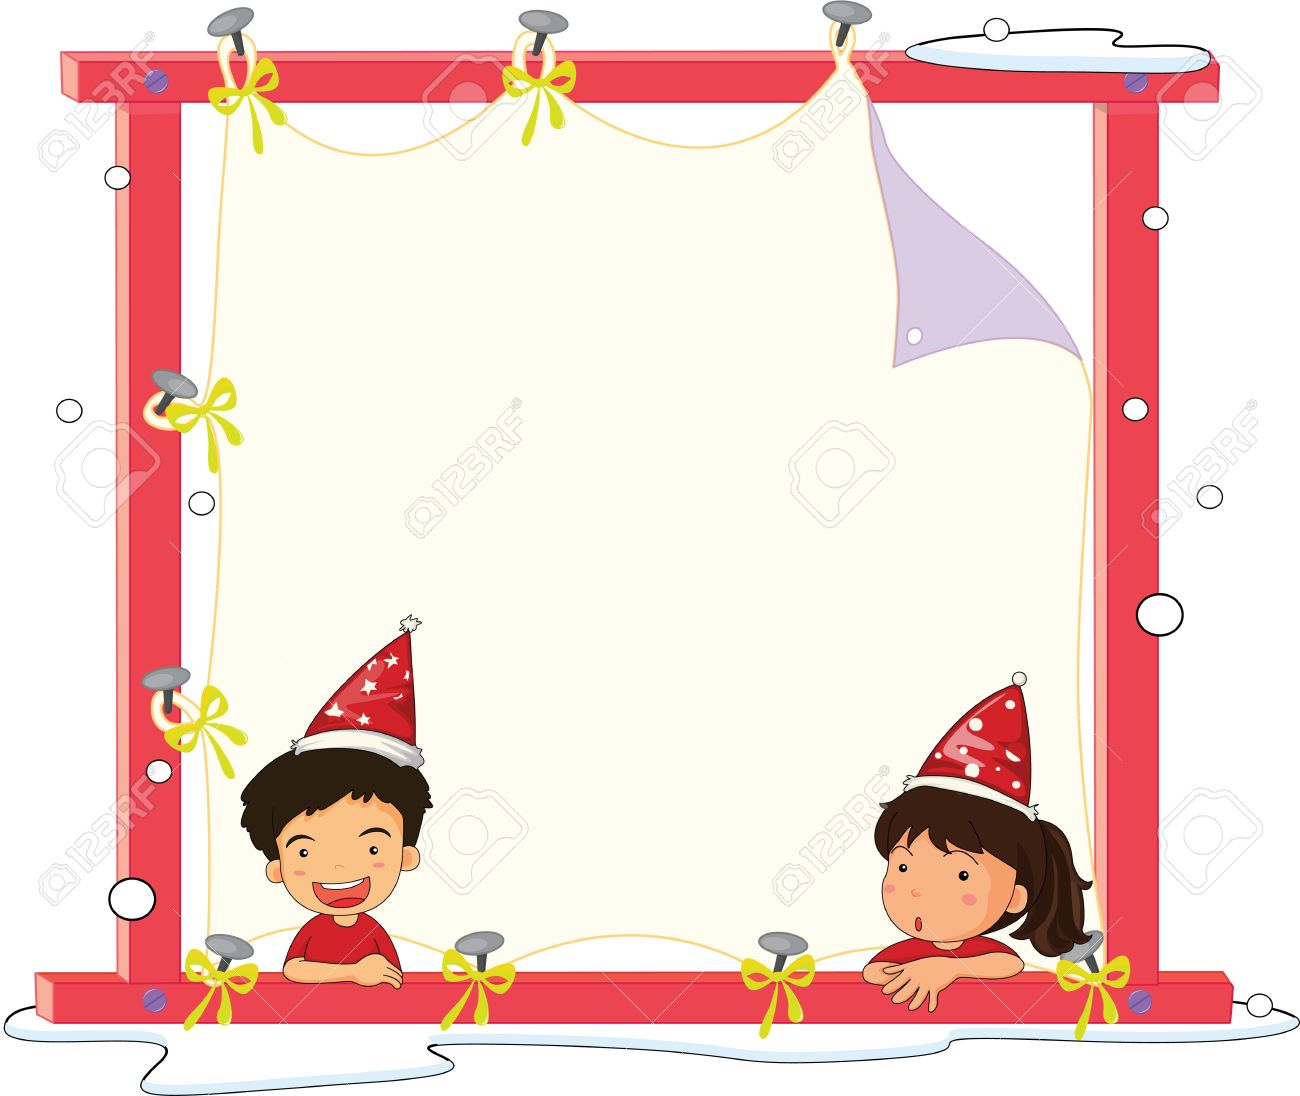 Frame clipart for kids 13 clipart station frame clipart for kids 13 jeuxipadfo Gallery